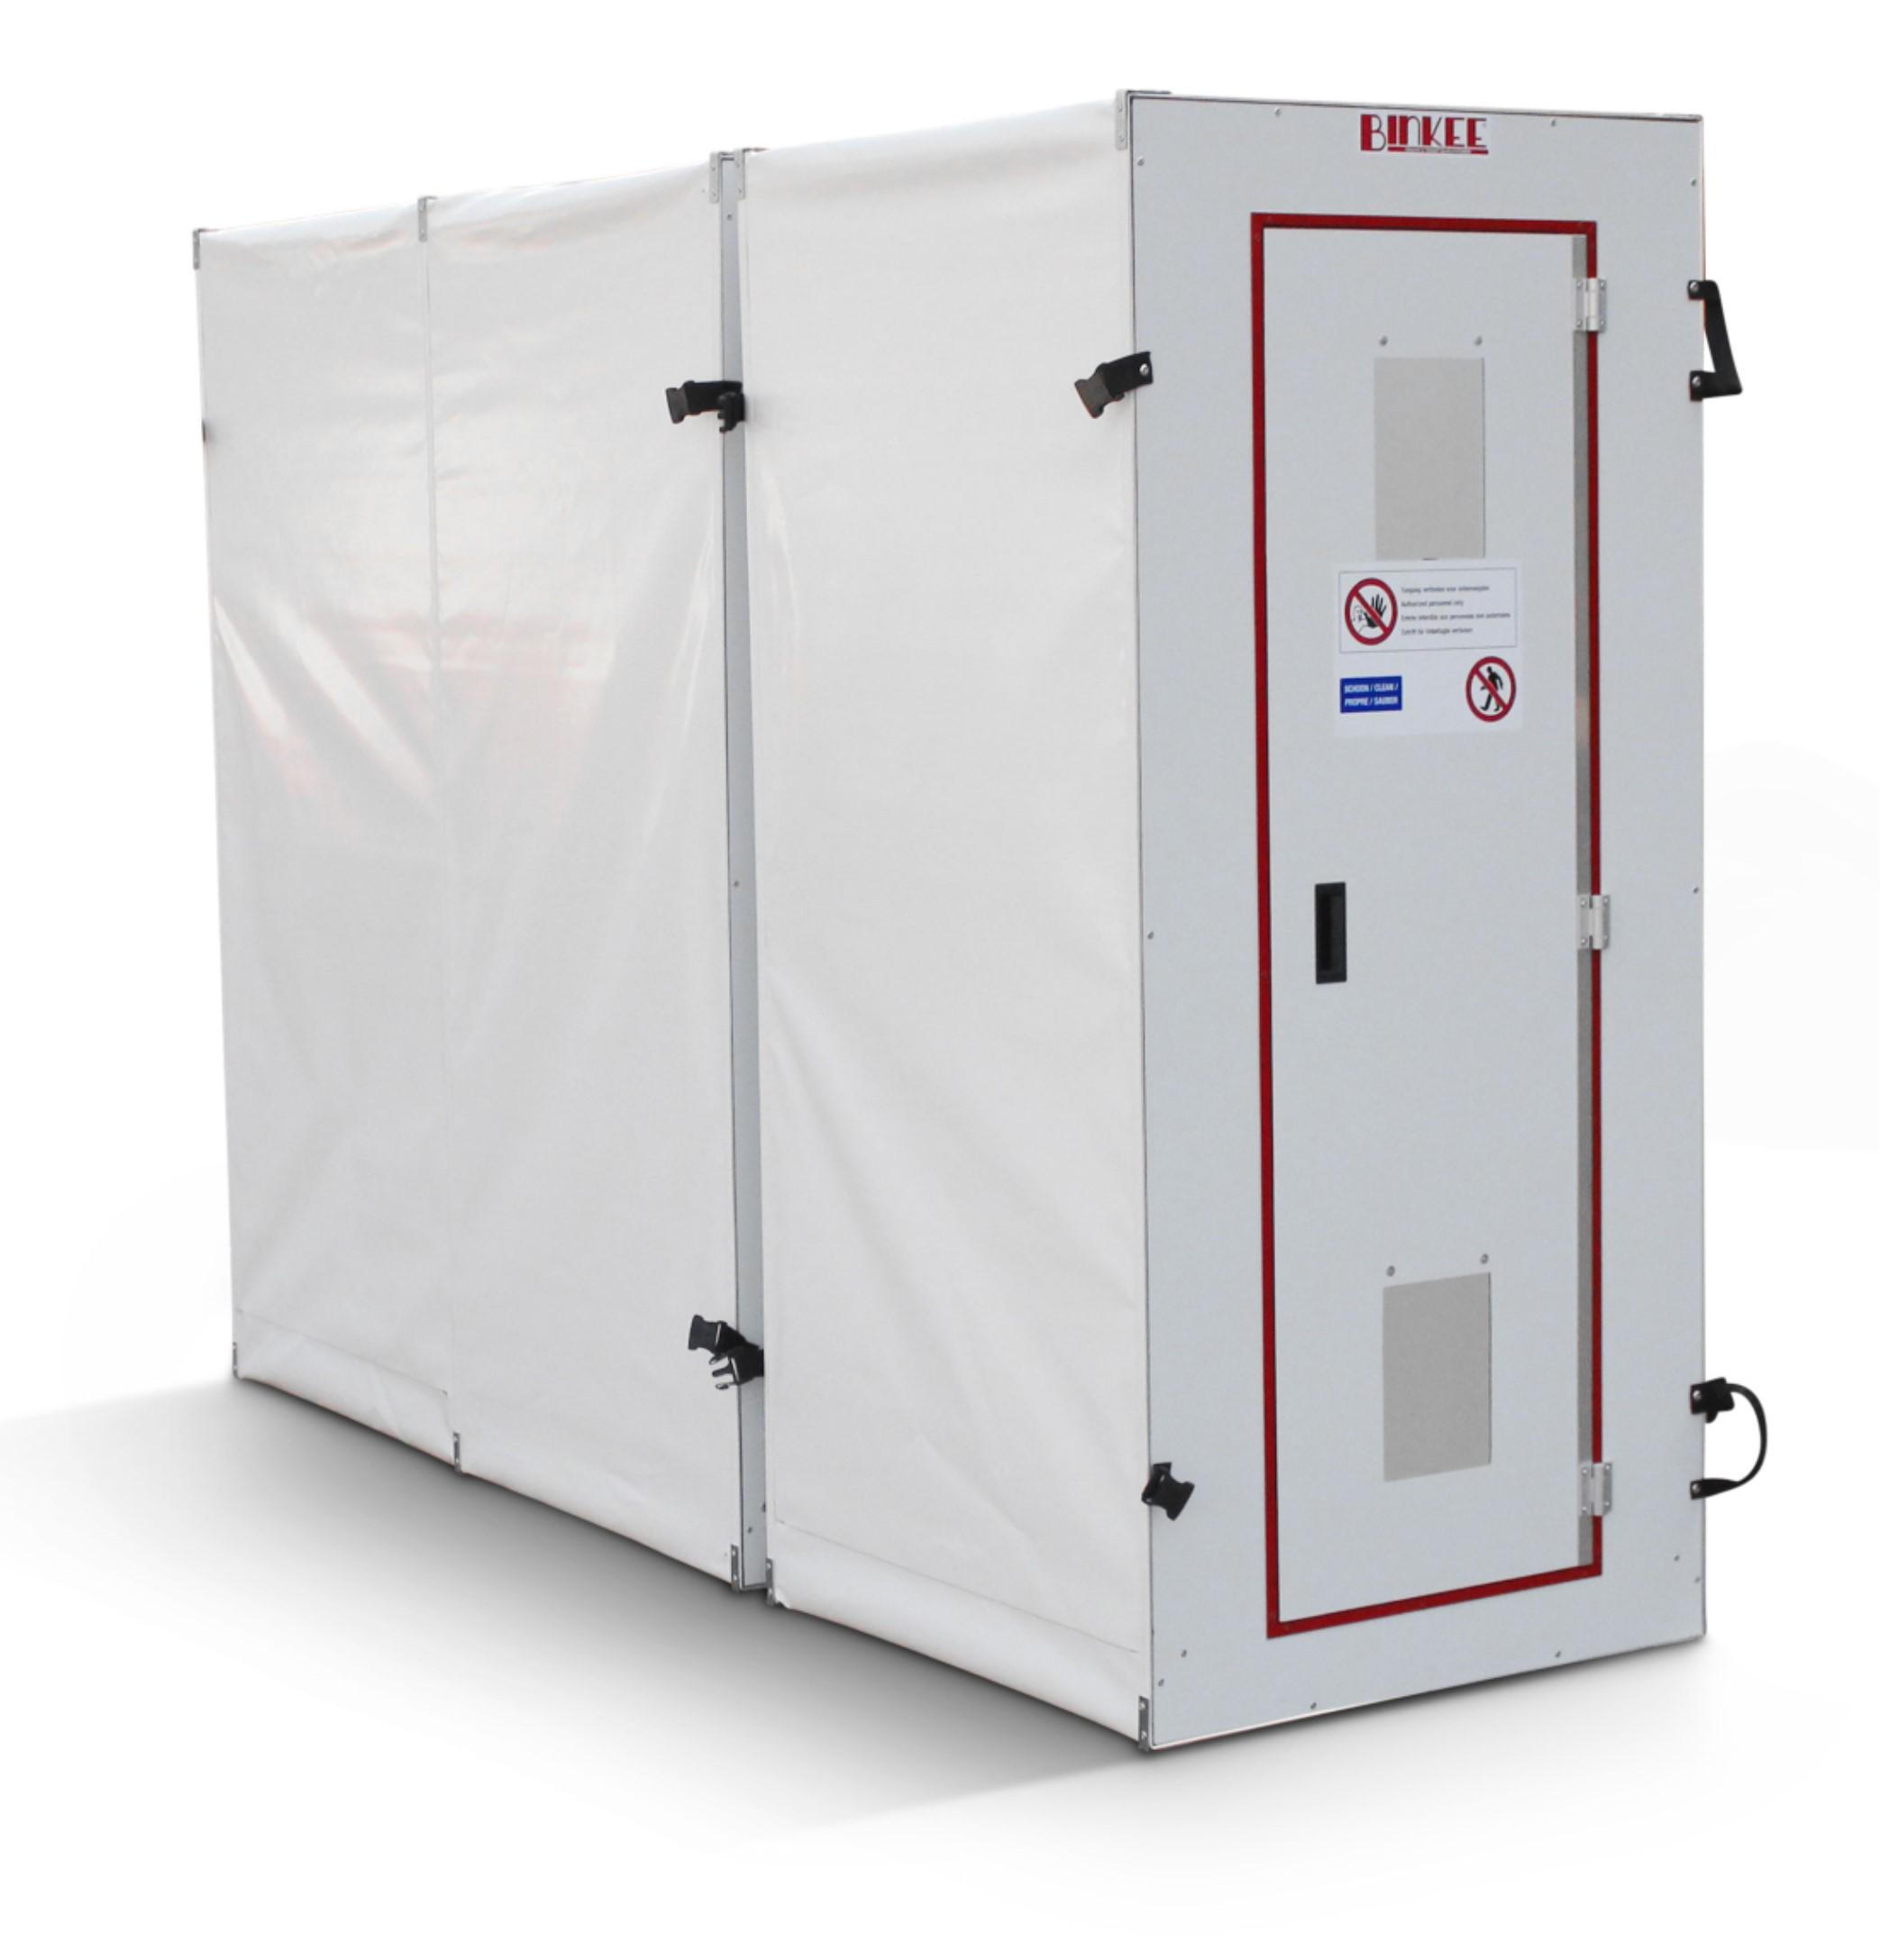 Binkee Decontamination Systems